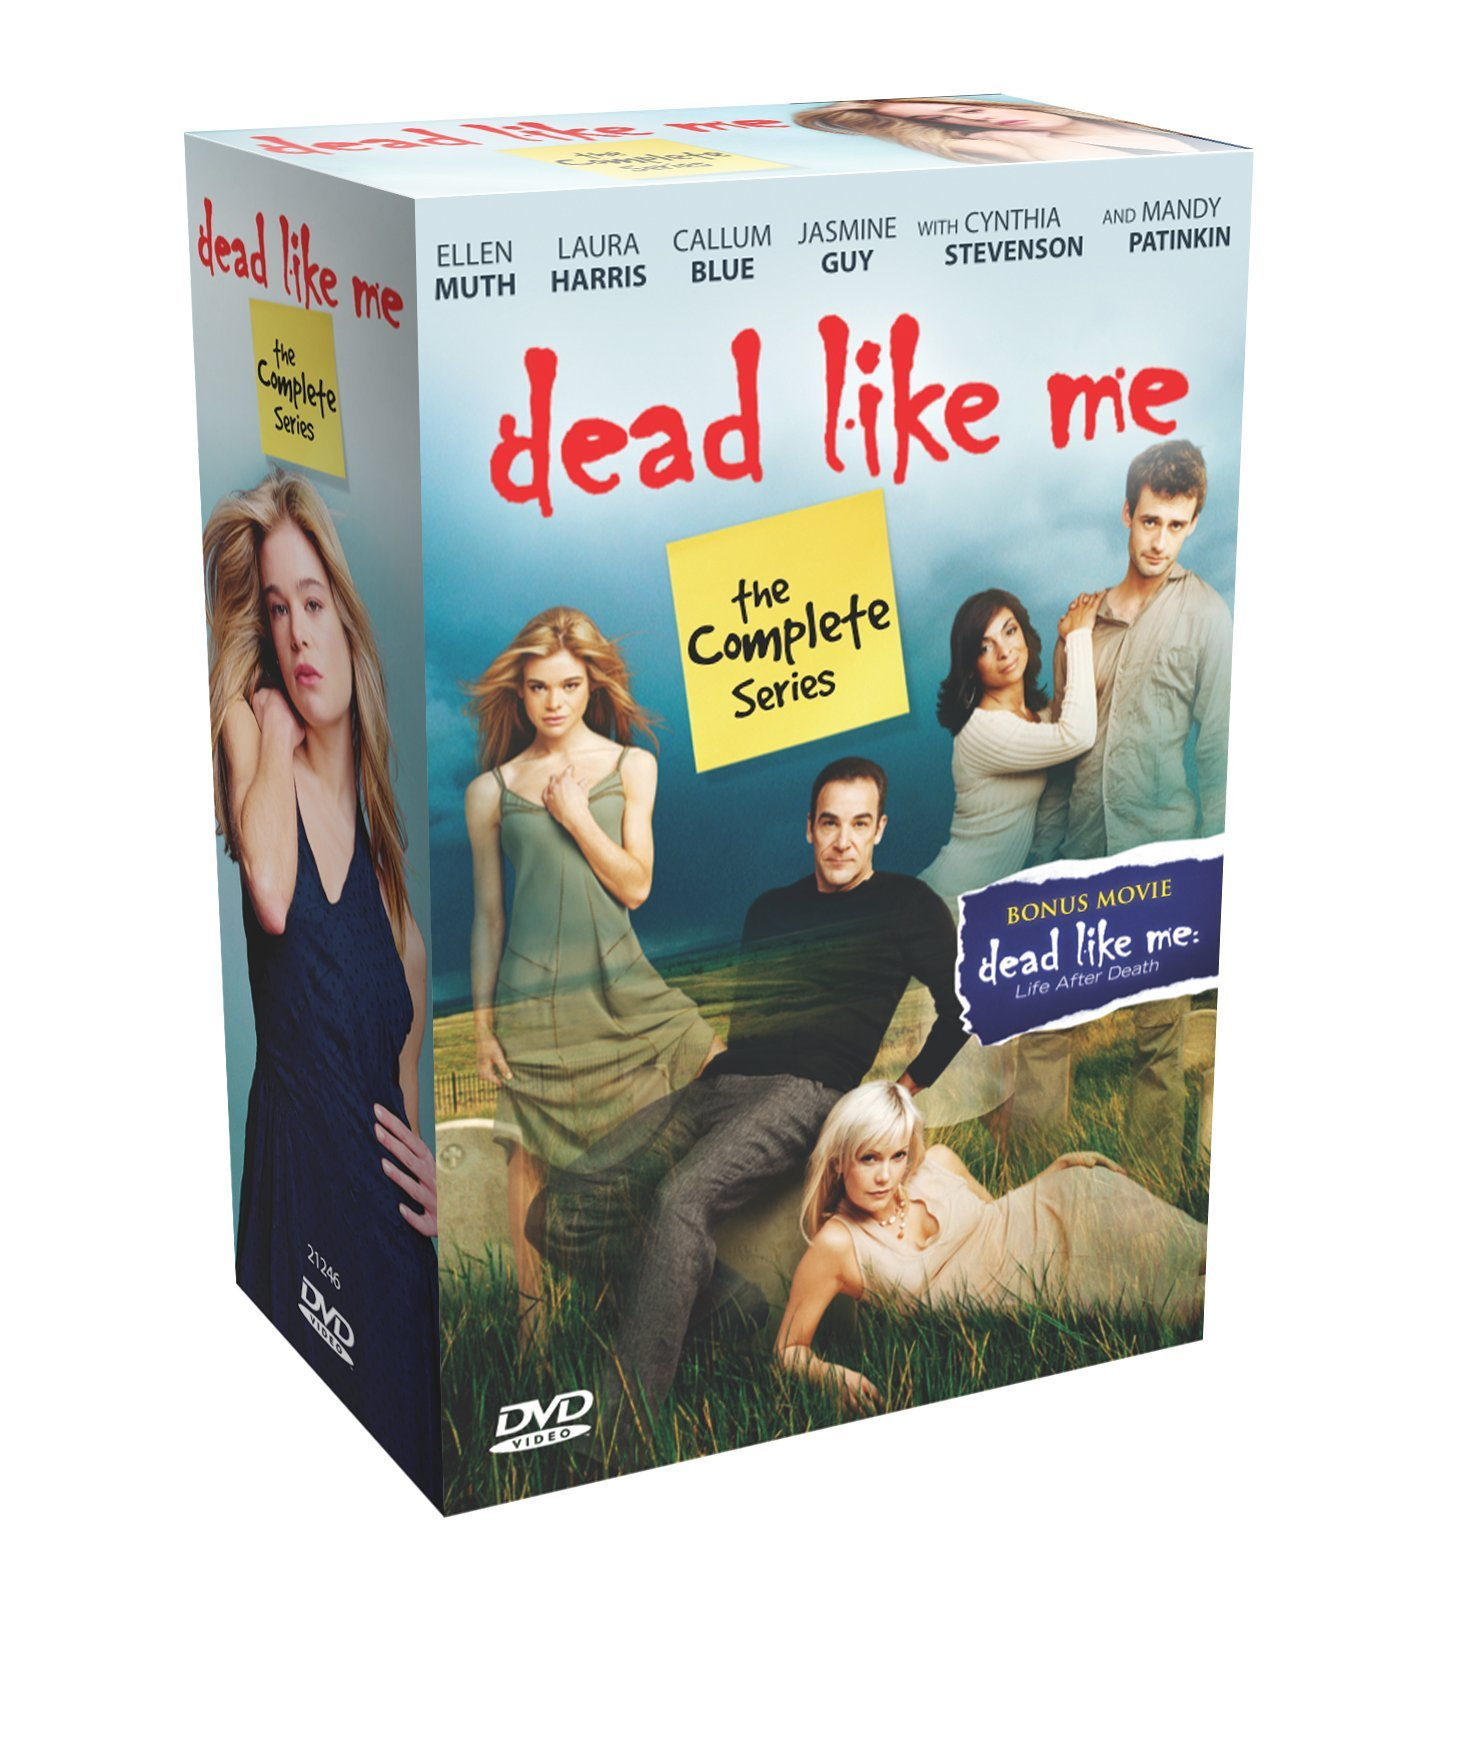 Dead Like Me: The Complete Series (Ellen Muth, Mandy Patinkin, Laura Harris, Callum Blue) by TGG Direct, LLC